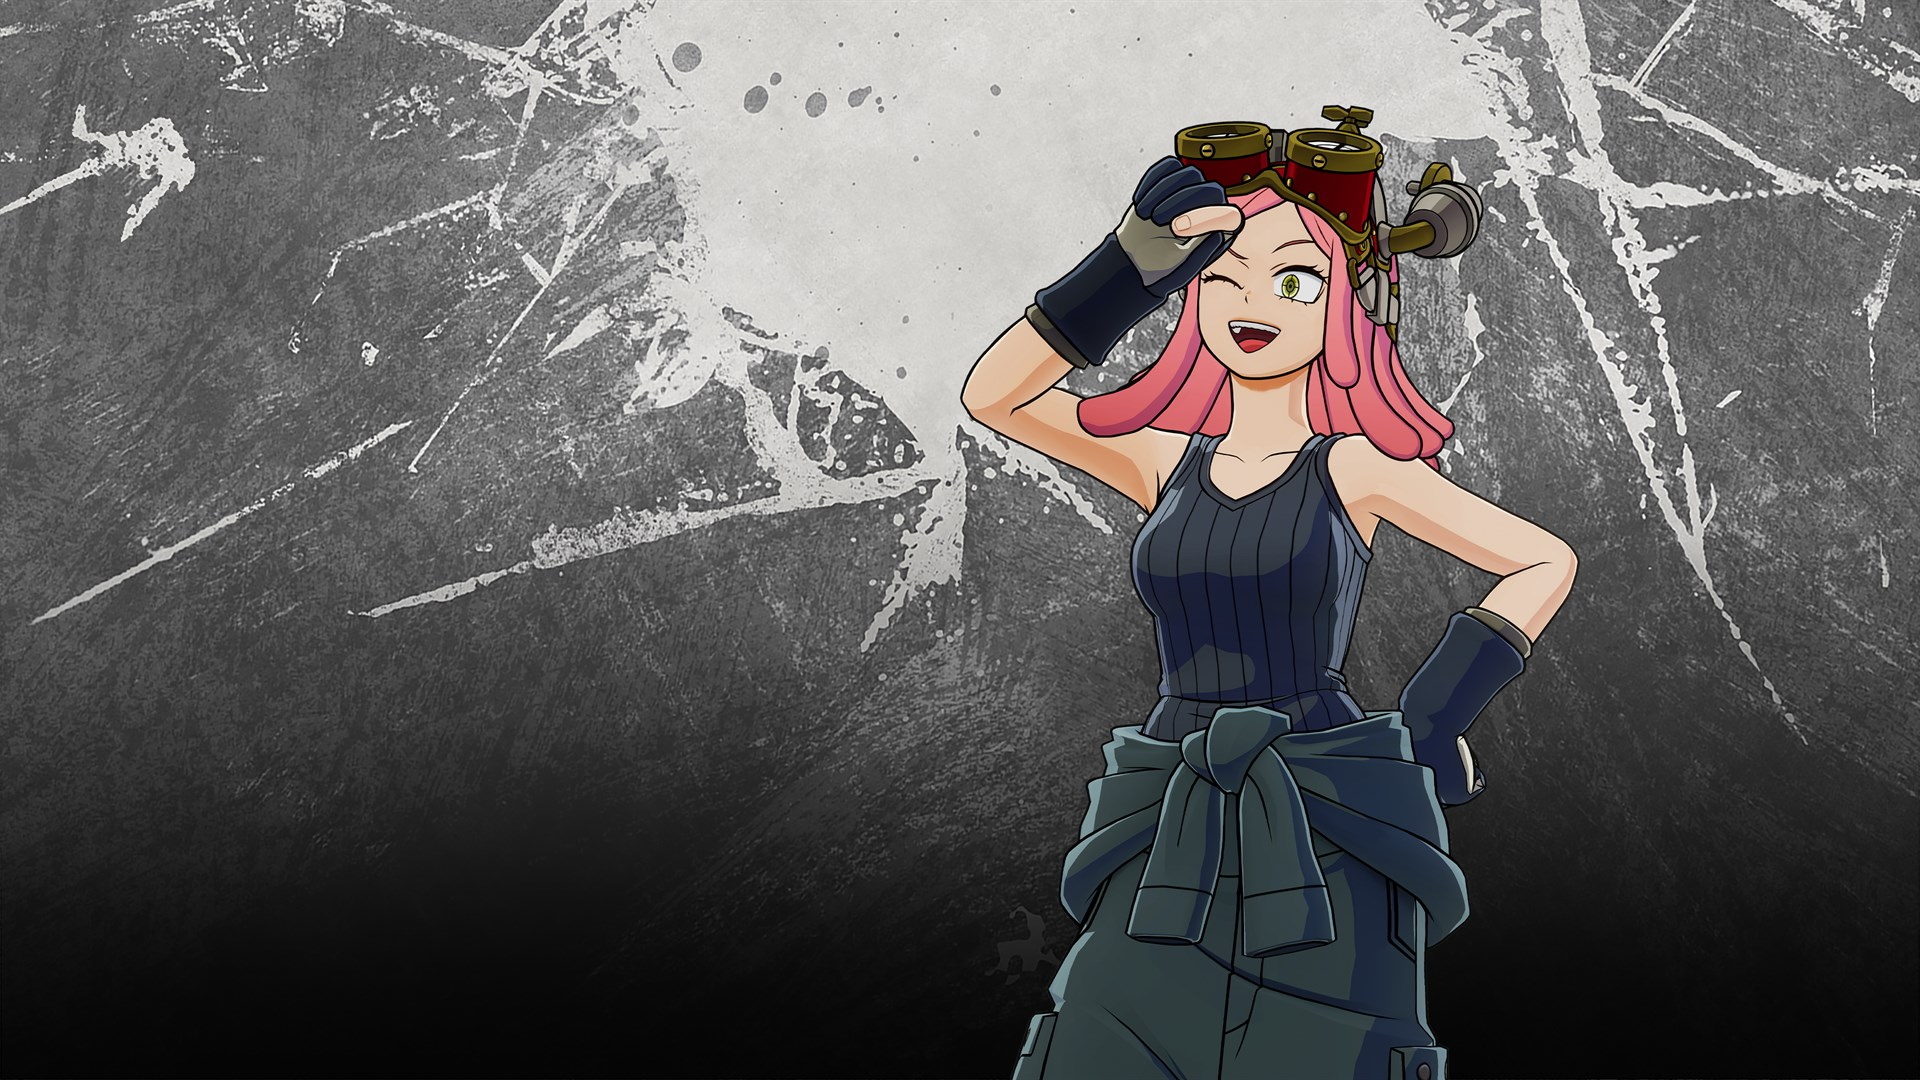 MY HERO ONE'S JUSTICE 2 DLC Pack 2: Mei Hatsume